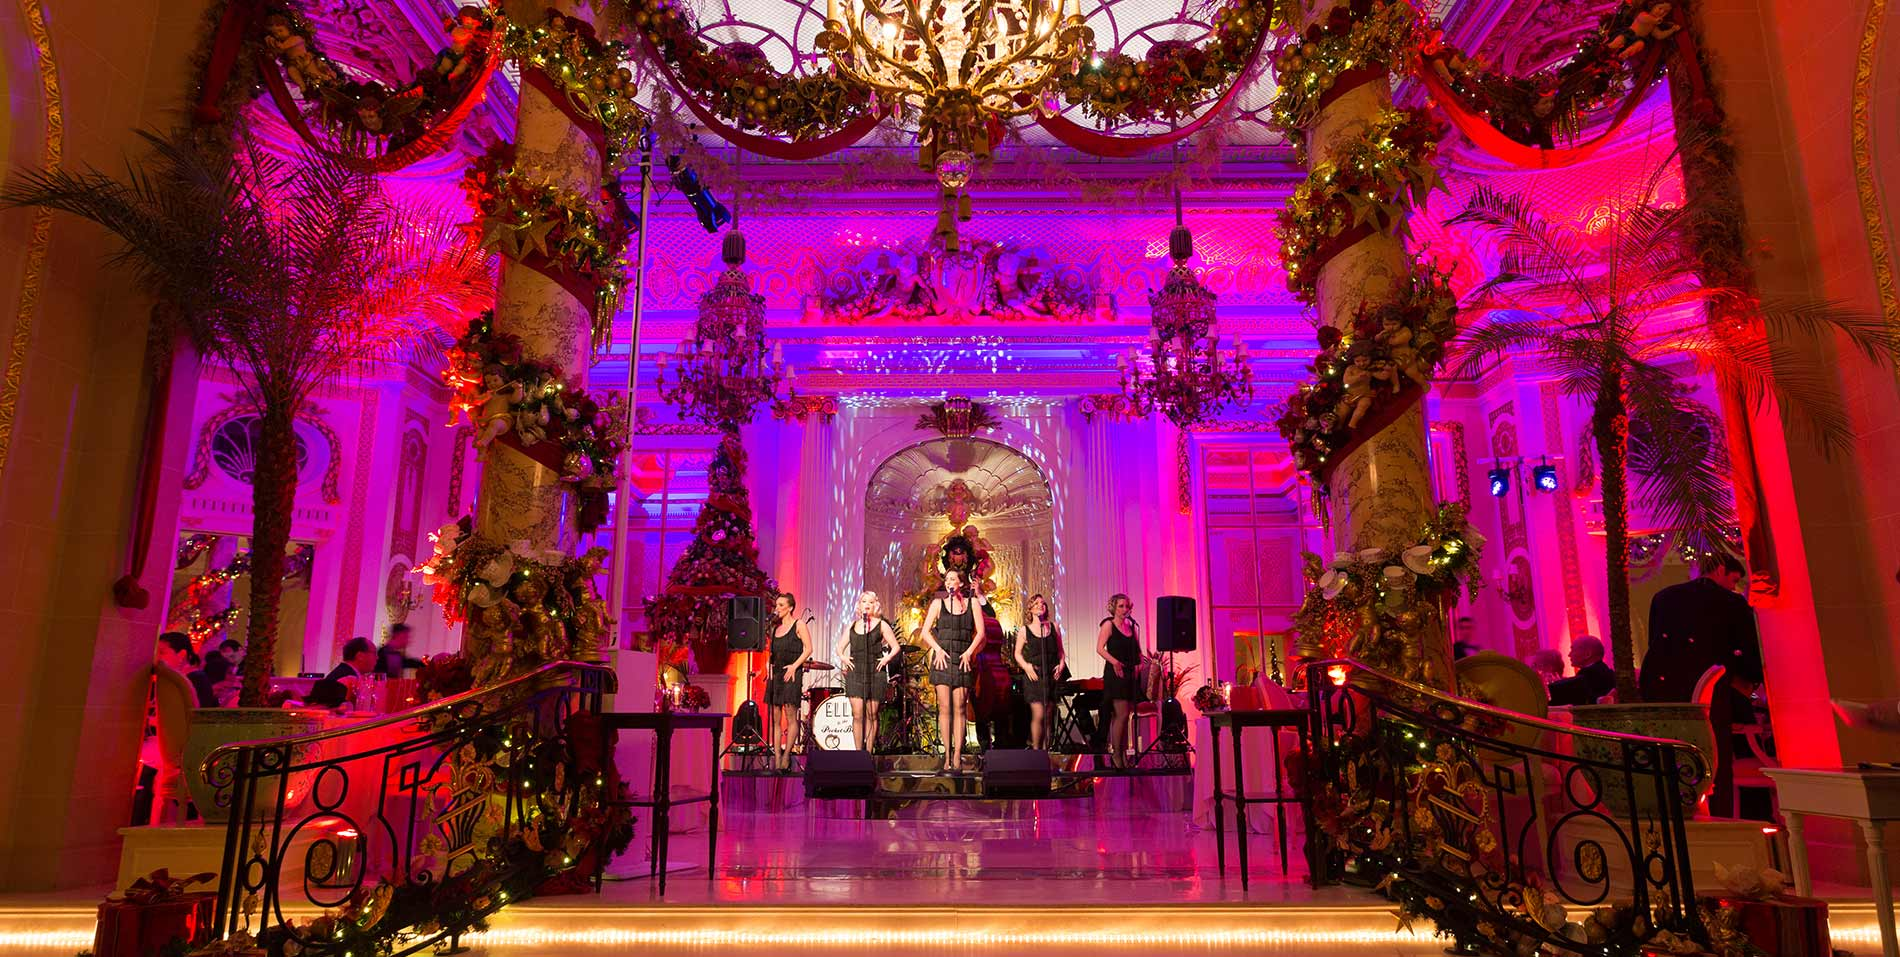 New Year's Eve at The Palm Court